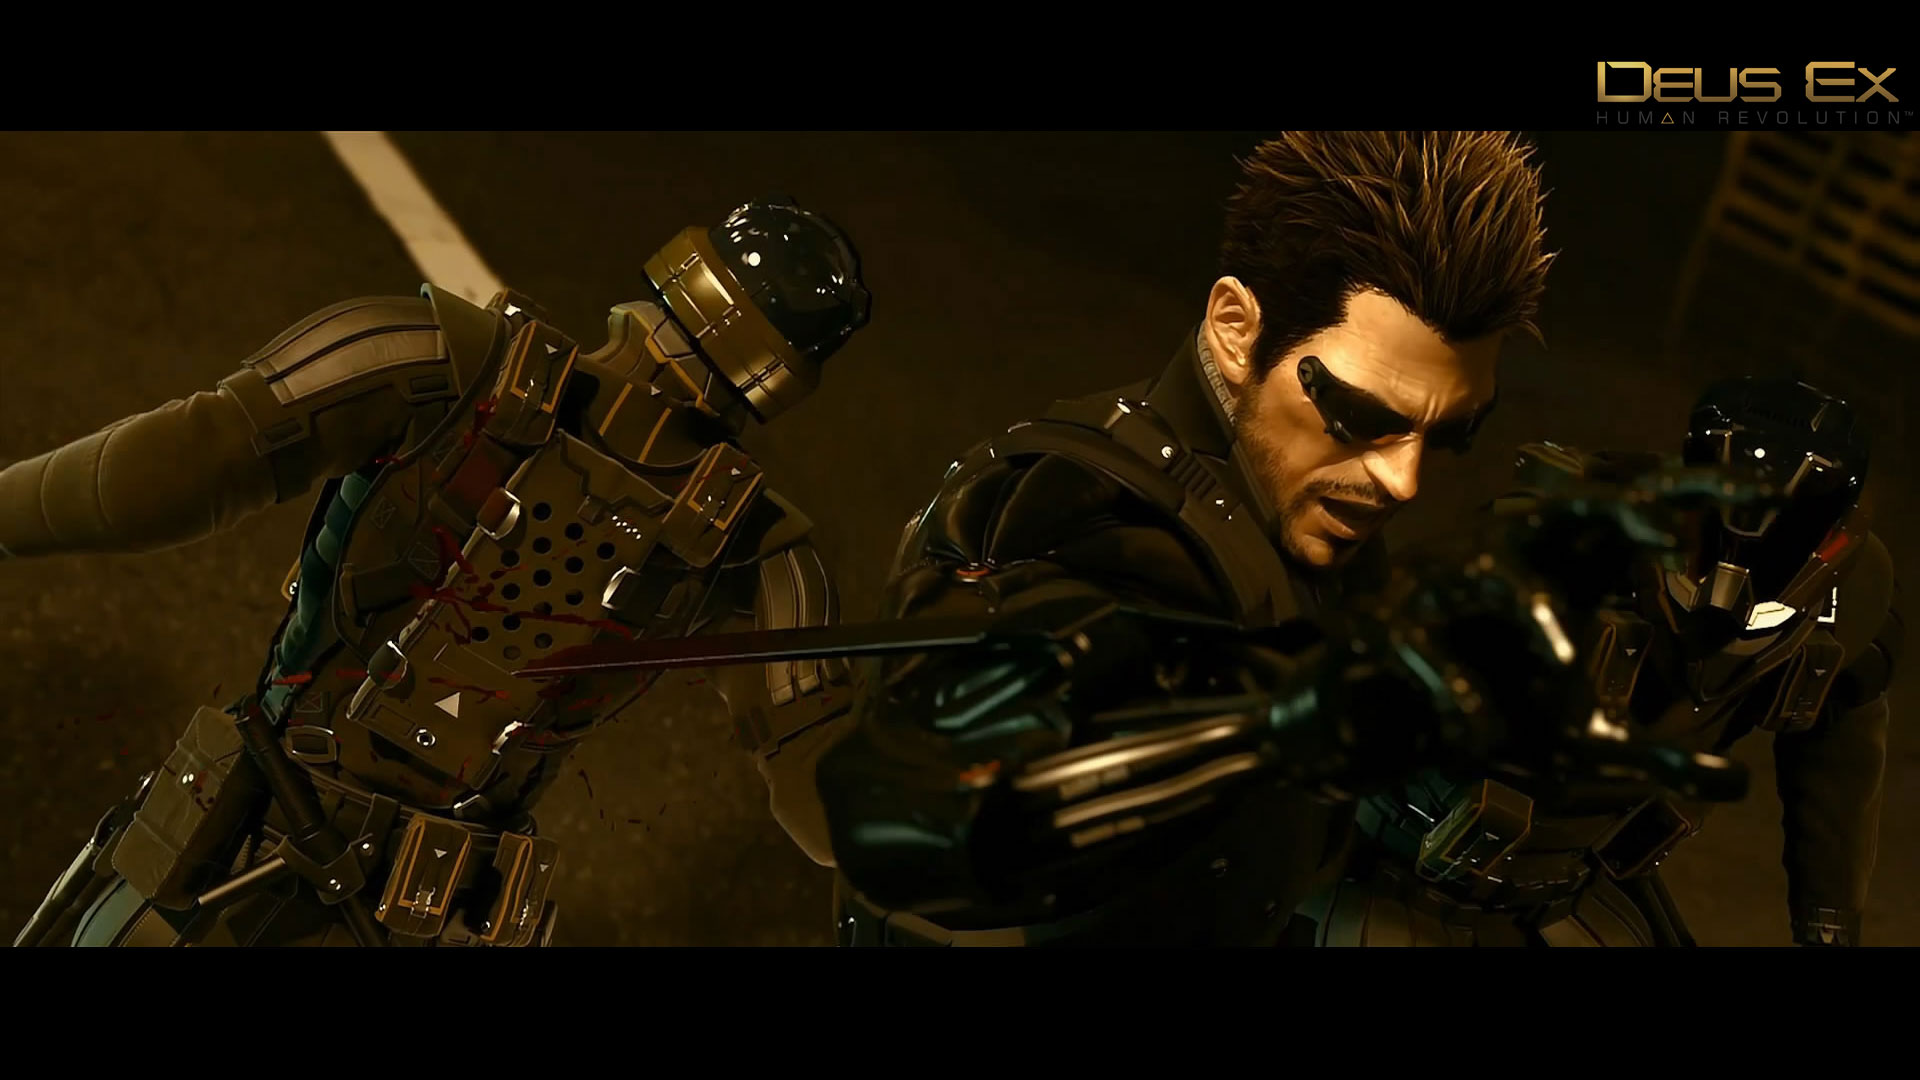 Deus Ex Human Revolution Wallpapers in HD Page 5 1920x1080